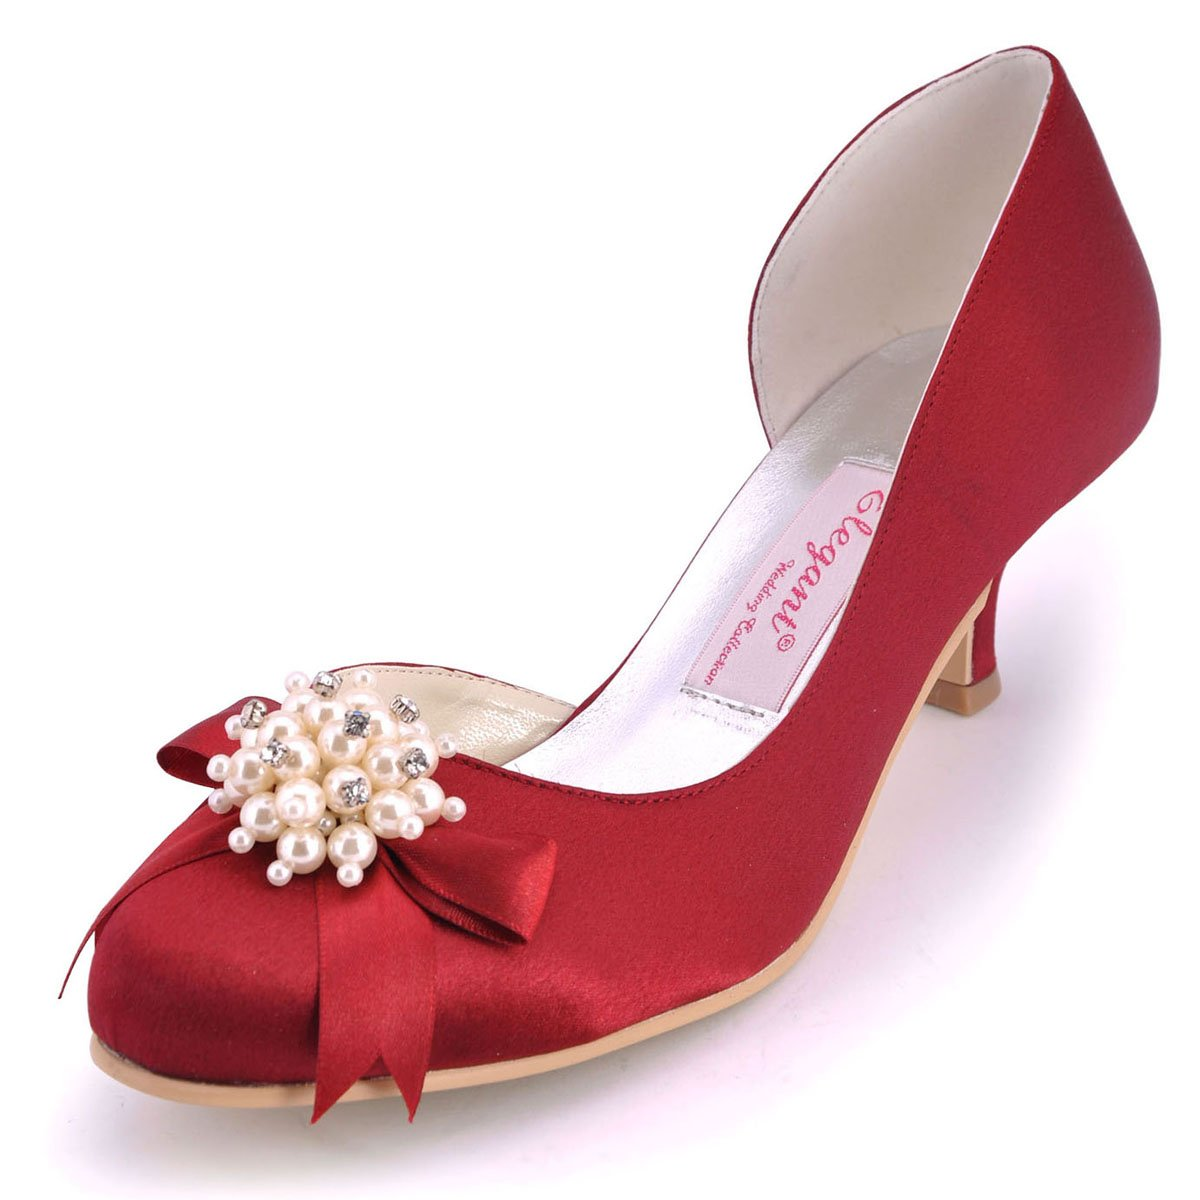 ElegantPark 100114 Women's Round Toe Middle Heel Pearls Bow Satin Evening Party Dress Pumps Burgundy US 6